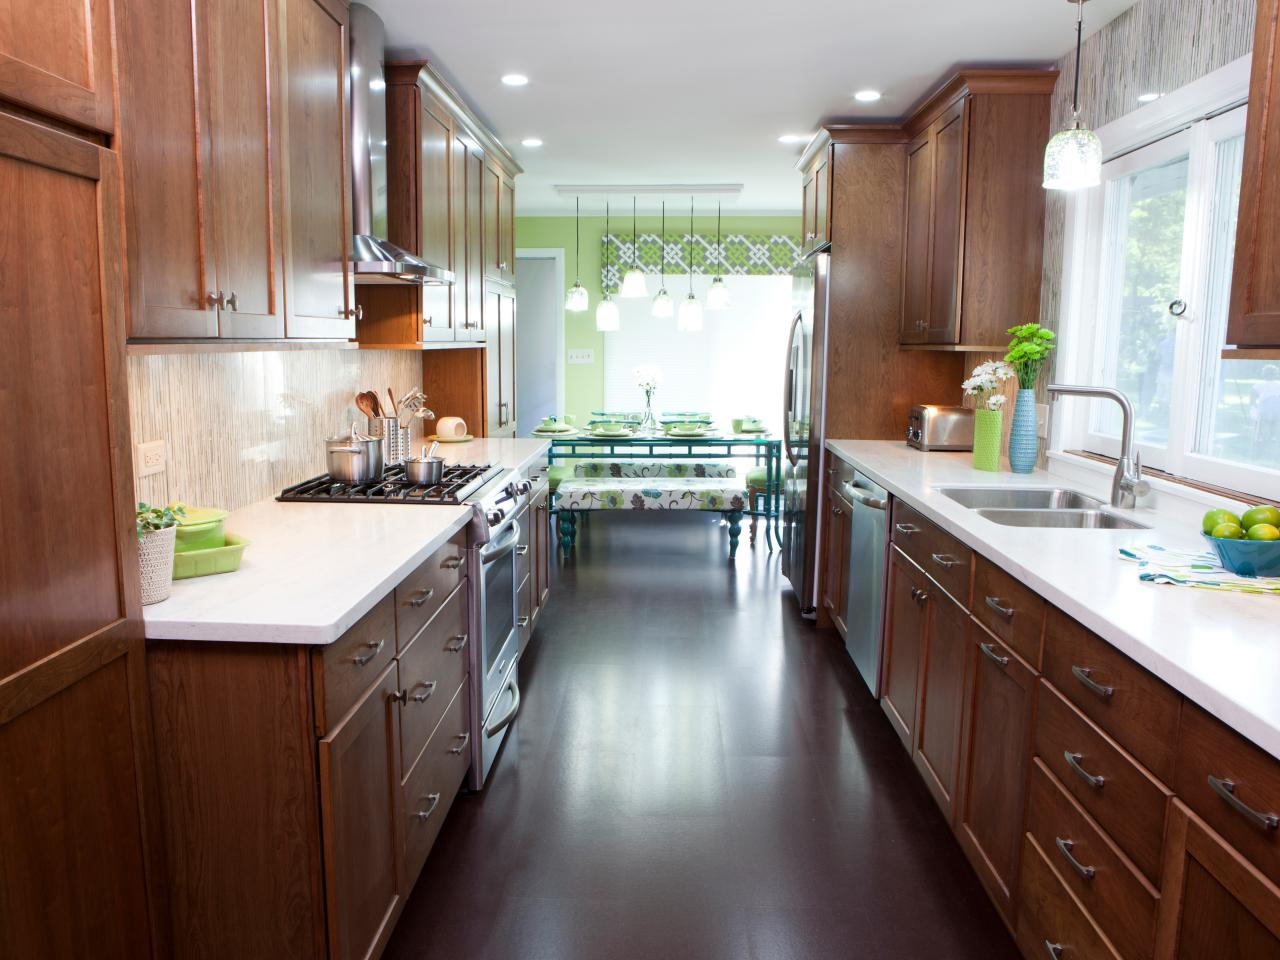 Kitchen Remodel Packages Decor Amusing Galley Kitchen Designs  Hgtv Inspiration